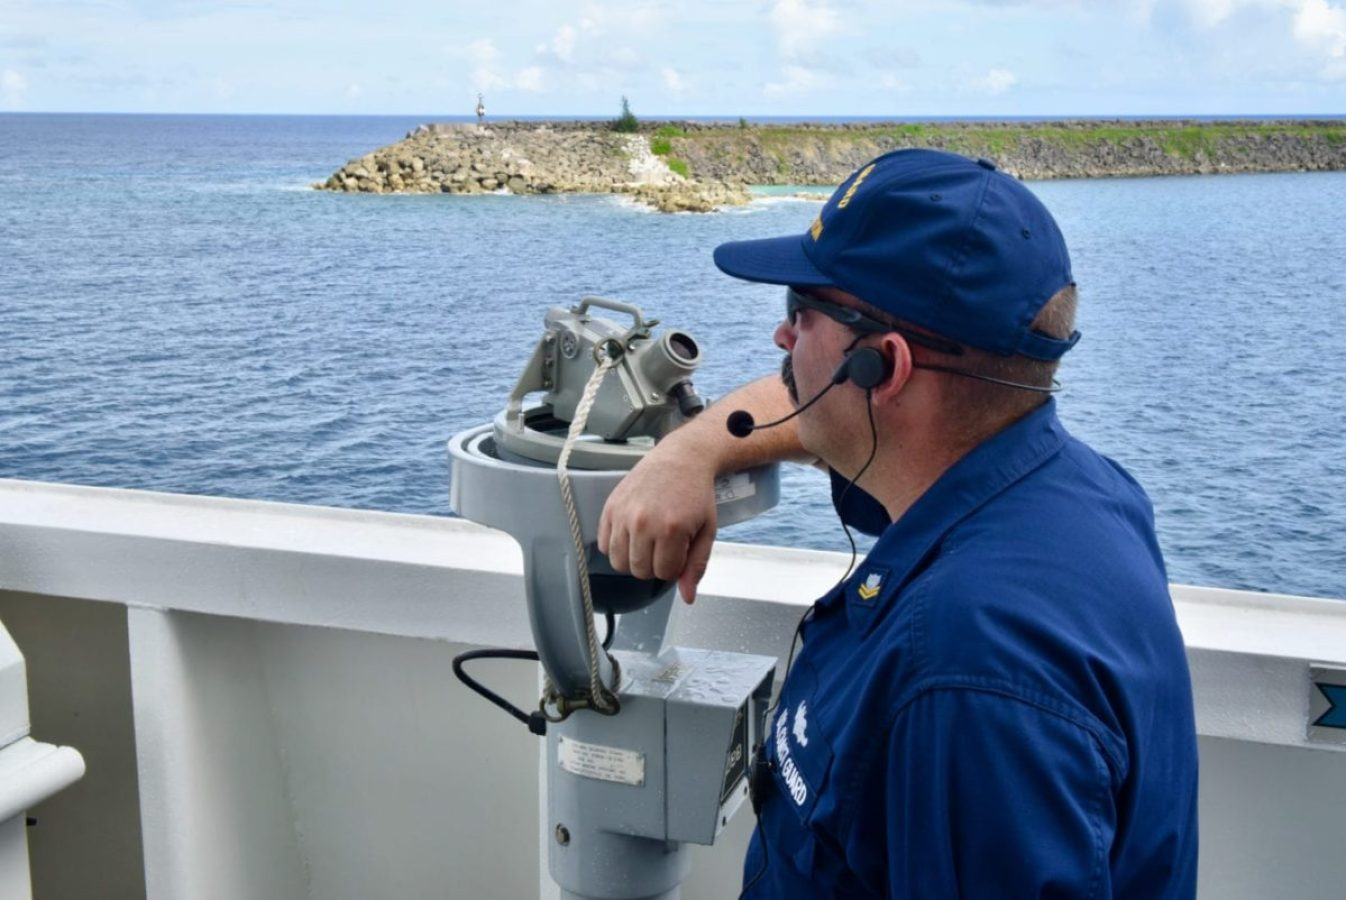 Petty Officer 2nd Class Josh Birkner, an operations specialist aboard USCGC Stratton, waits to take a navigational fix as the cutter departs Guam, Oct. 30, 2019. The cutter's crew spent half of 2019 underway in support of joint operations in the Pacific. (U.S. Coast Guard photo by Chief Petty Officer Sara Muir/Released)